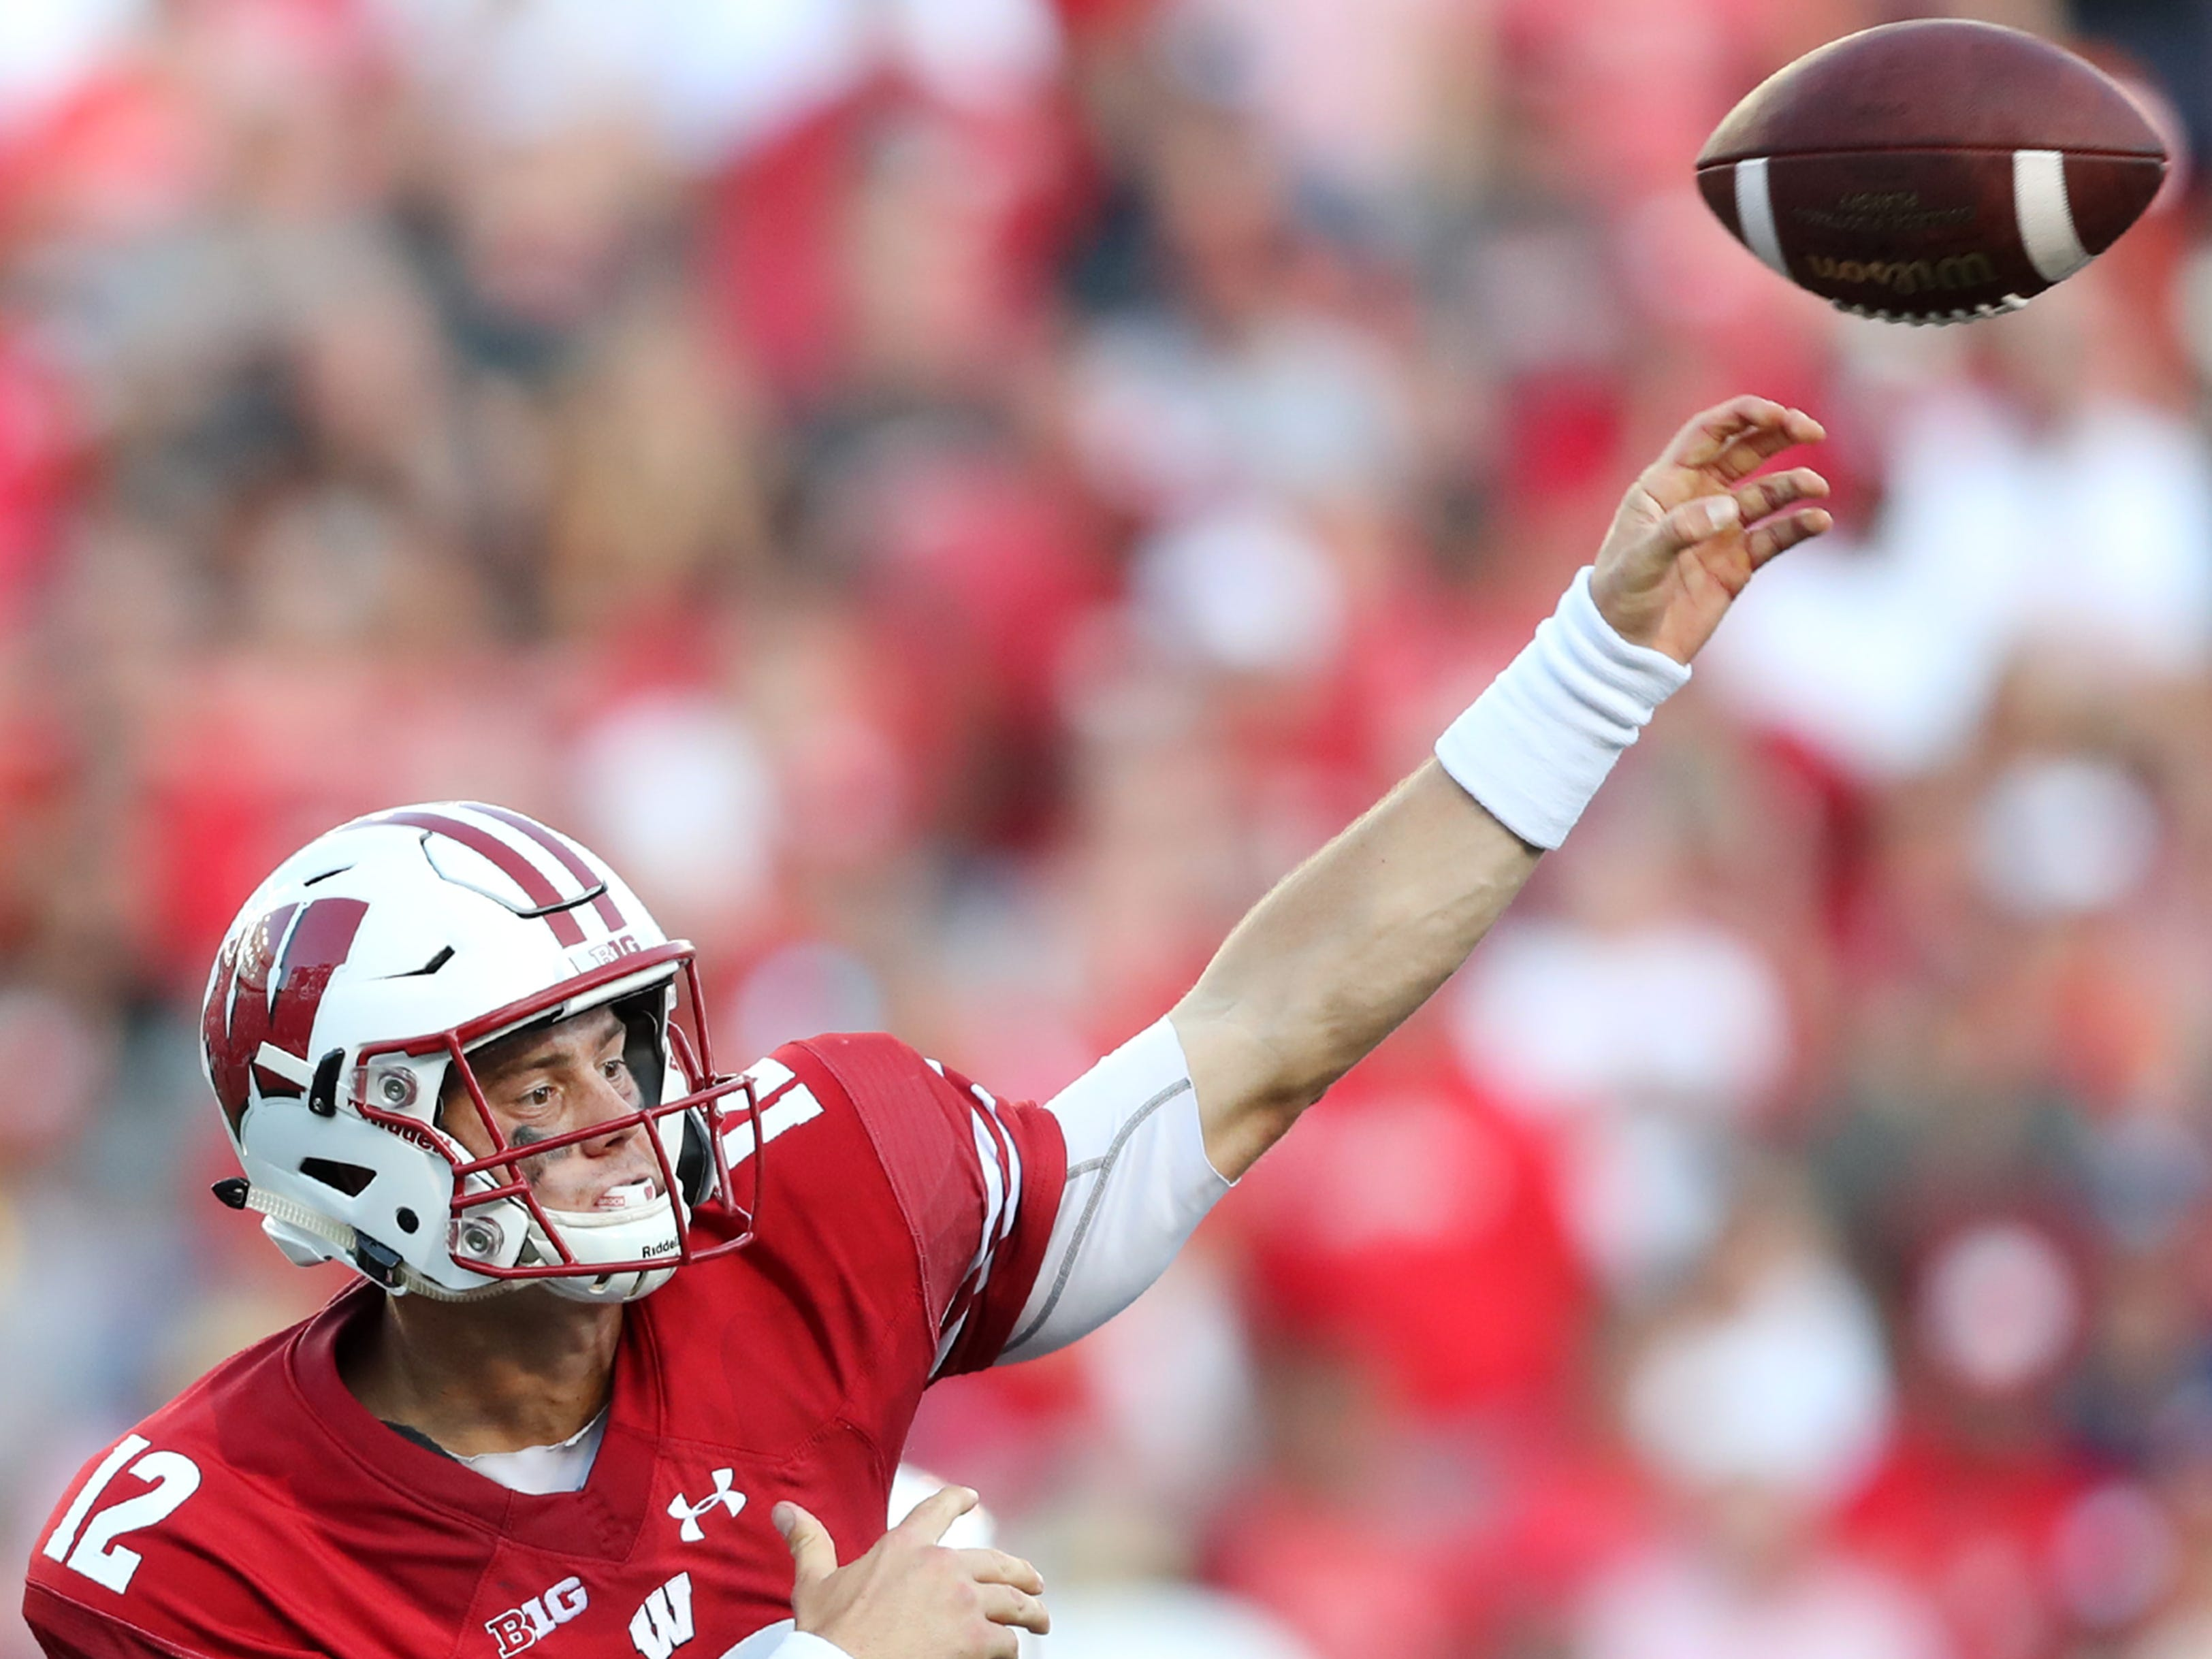 Wisconsin quarterback Alex Hornibrook passes the ball against Brigham Young.